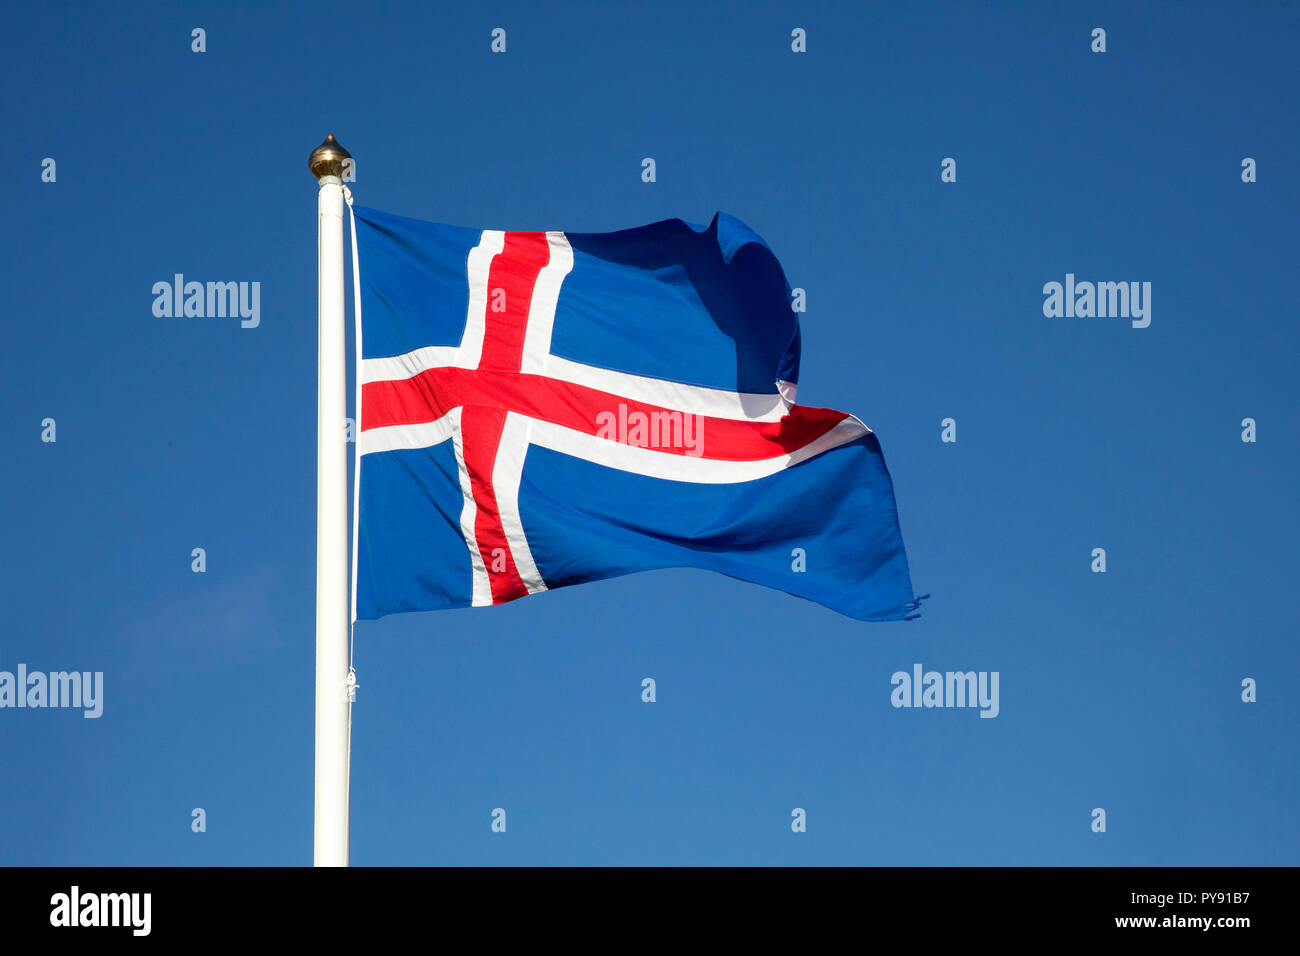 Drapeau de l'Islande Photo Stock